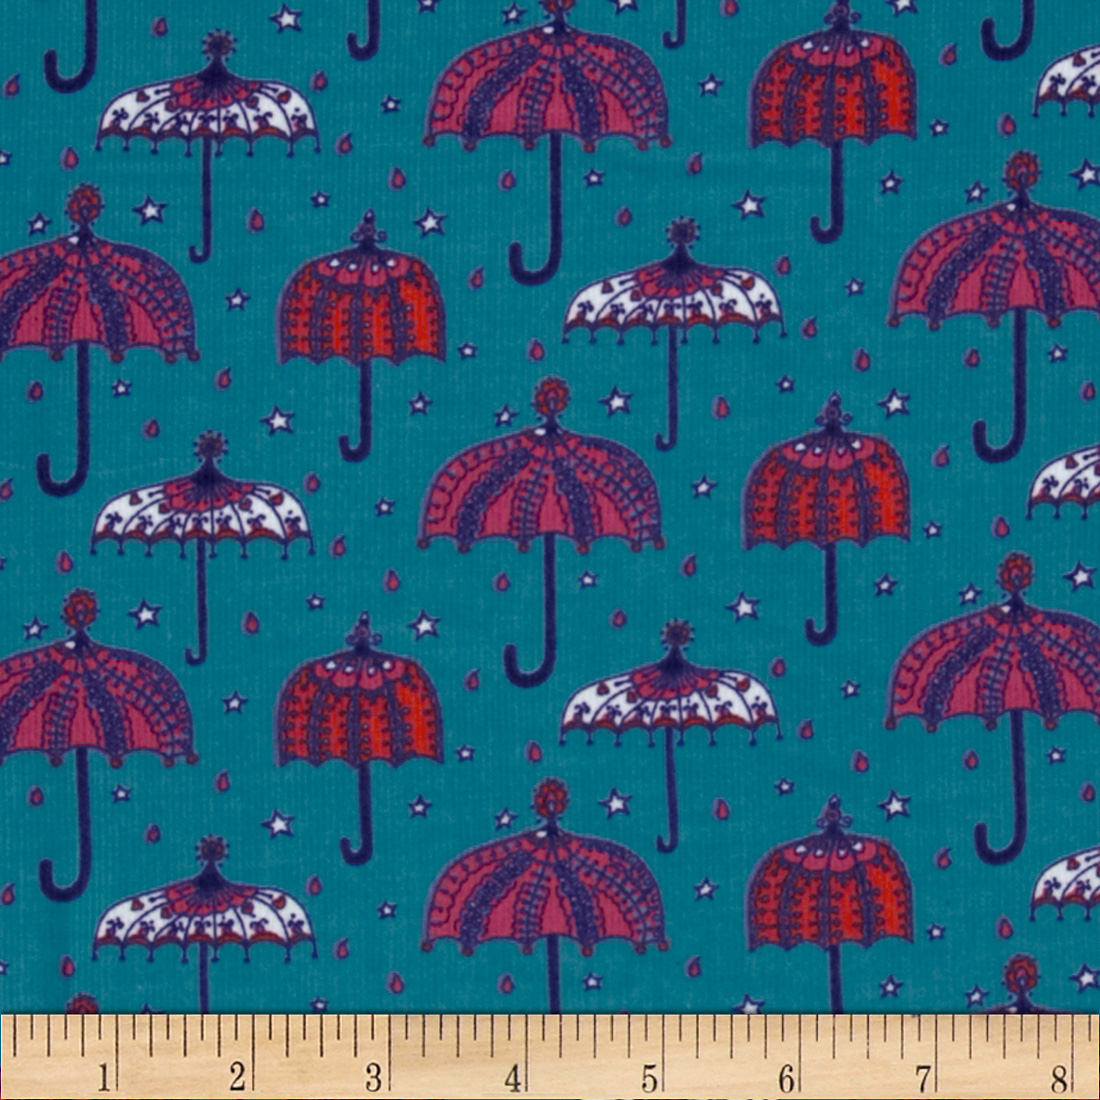 Kaufman 21 Wale Cool Cords Umbrellas Turquoise Fabric